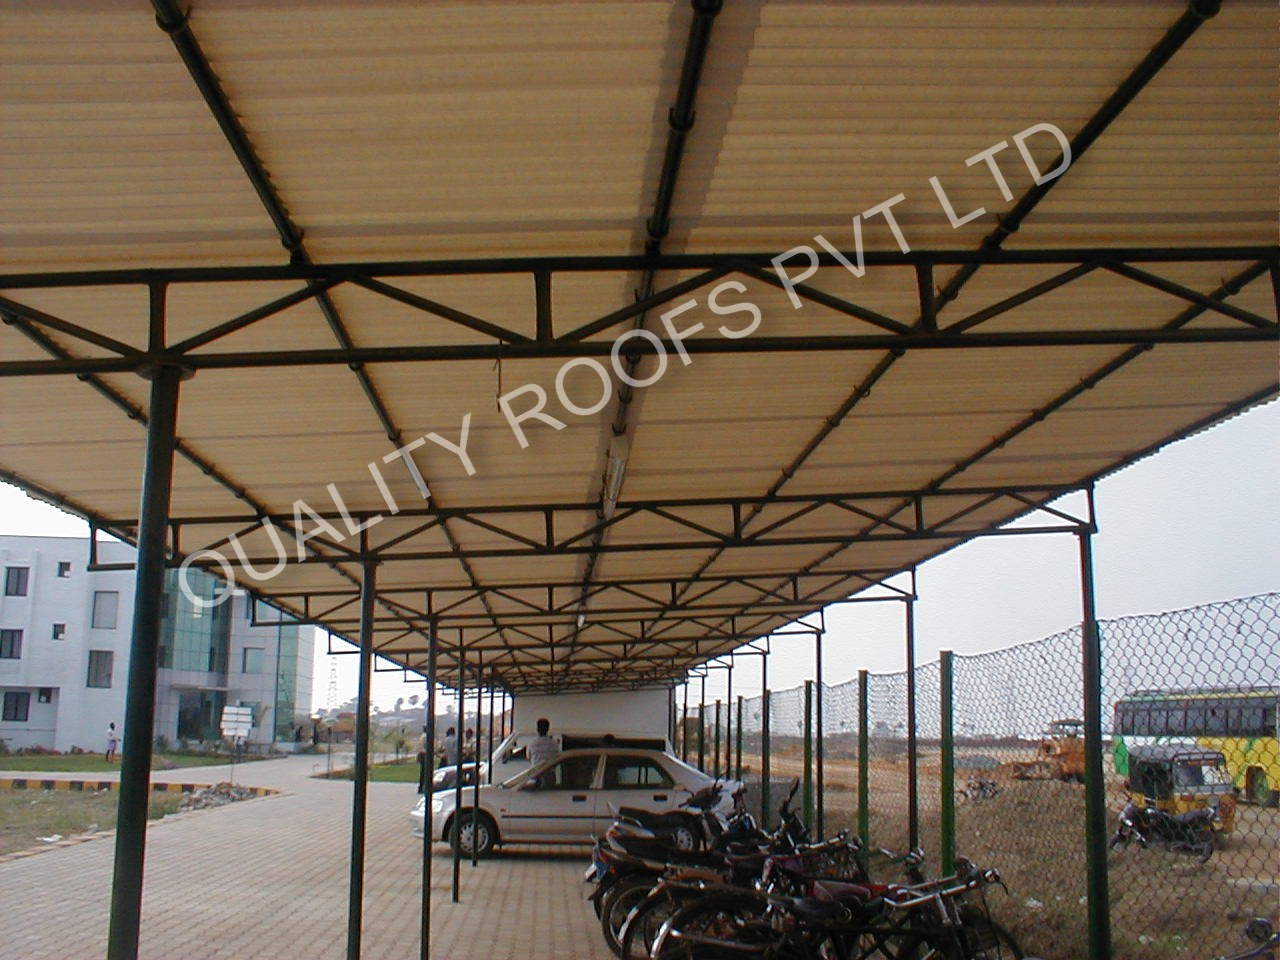 Quality Roofs Pvt Ltd, # Roofing Services In Chengalpat # Steel Roofing Work In Chengalpat # Metal Roofing Work In Chengalpat # Metal Roof Sheet In Chengalpat # Steel Roofing Work In Chengalpat